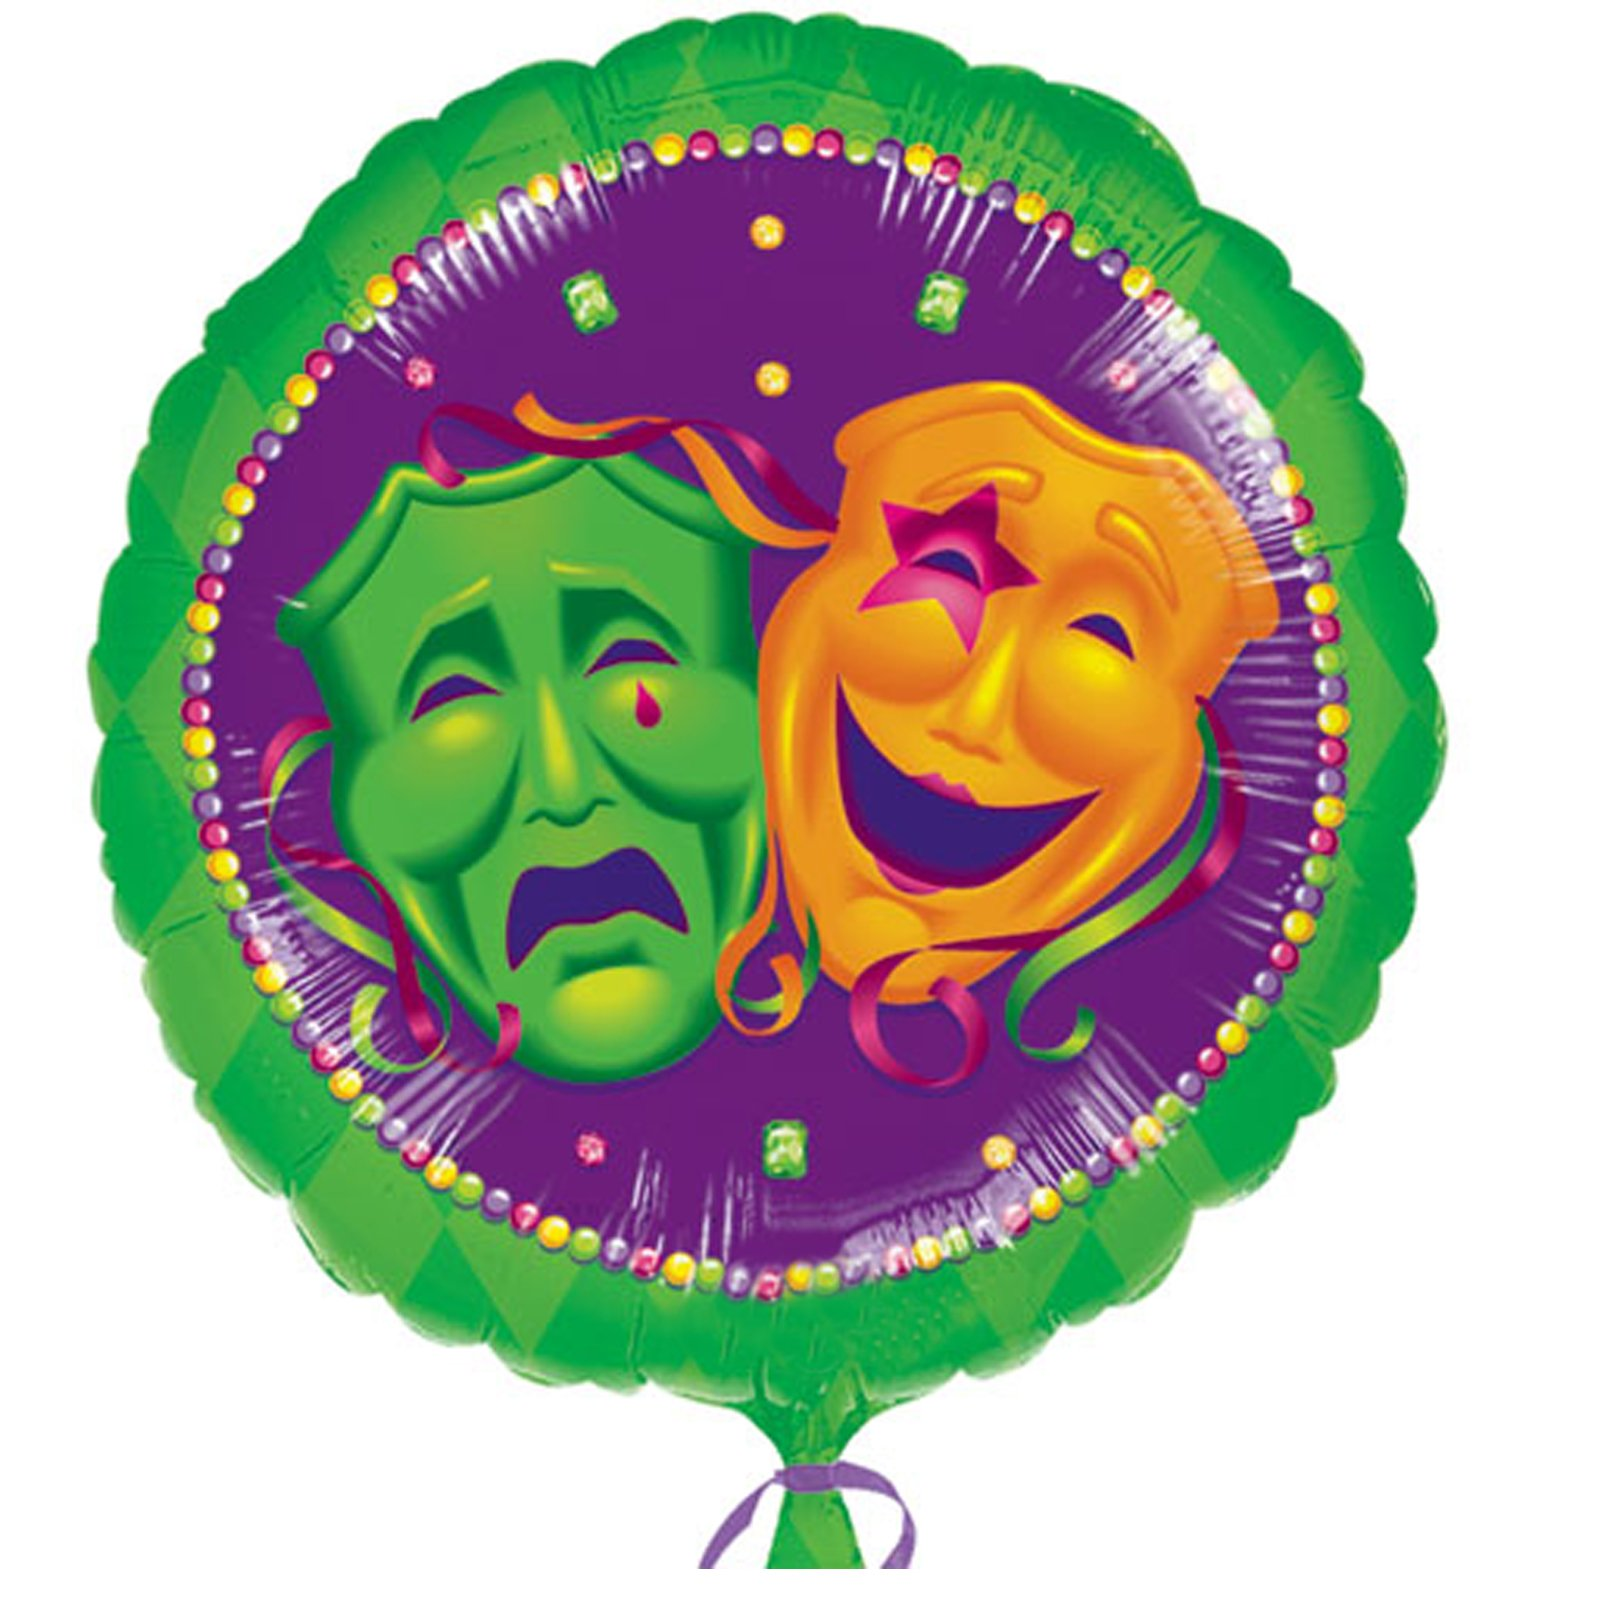 "Masquerade Comedy/Tragedy Faces 18"" Foil Balloon"